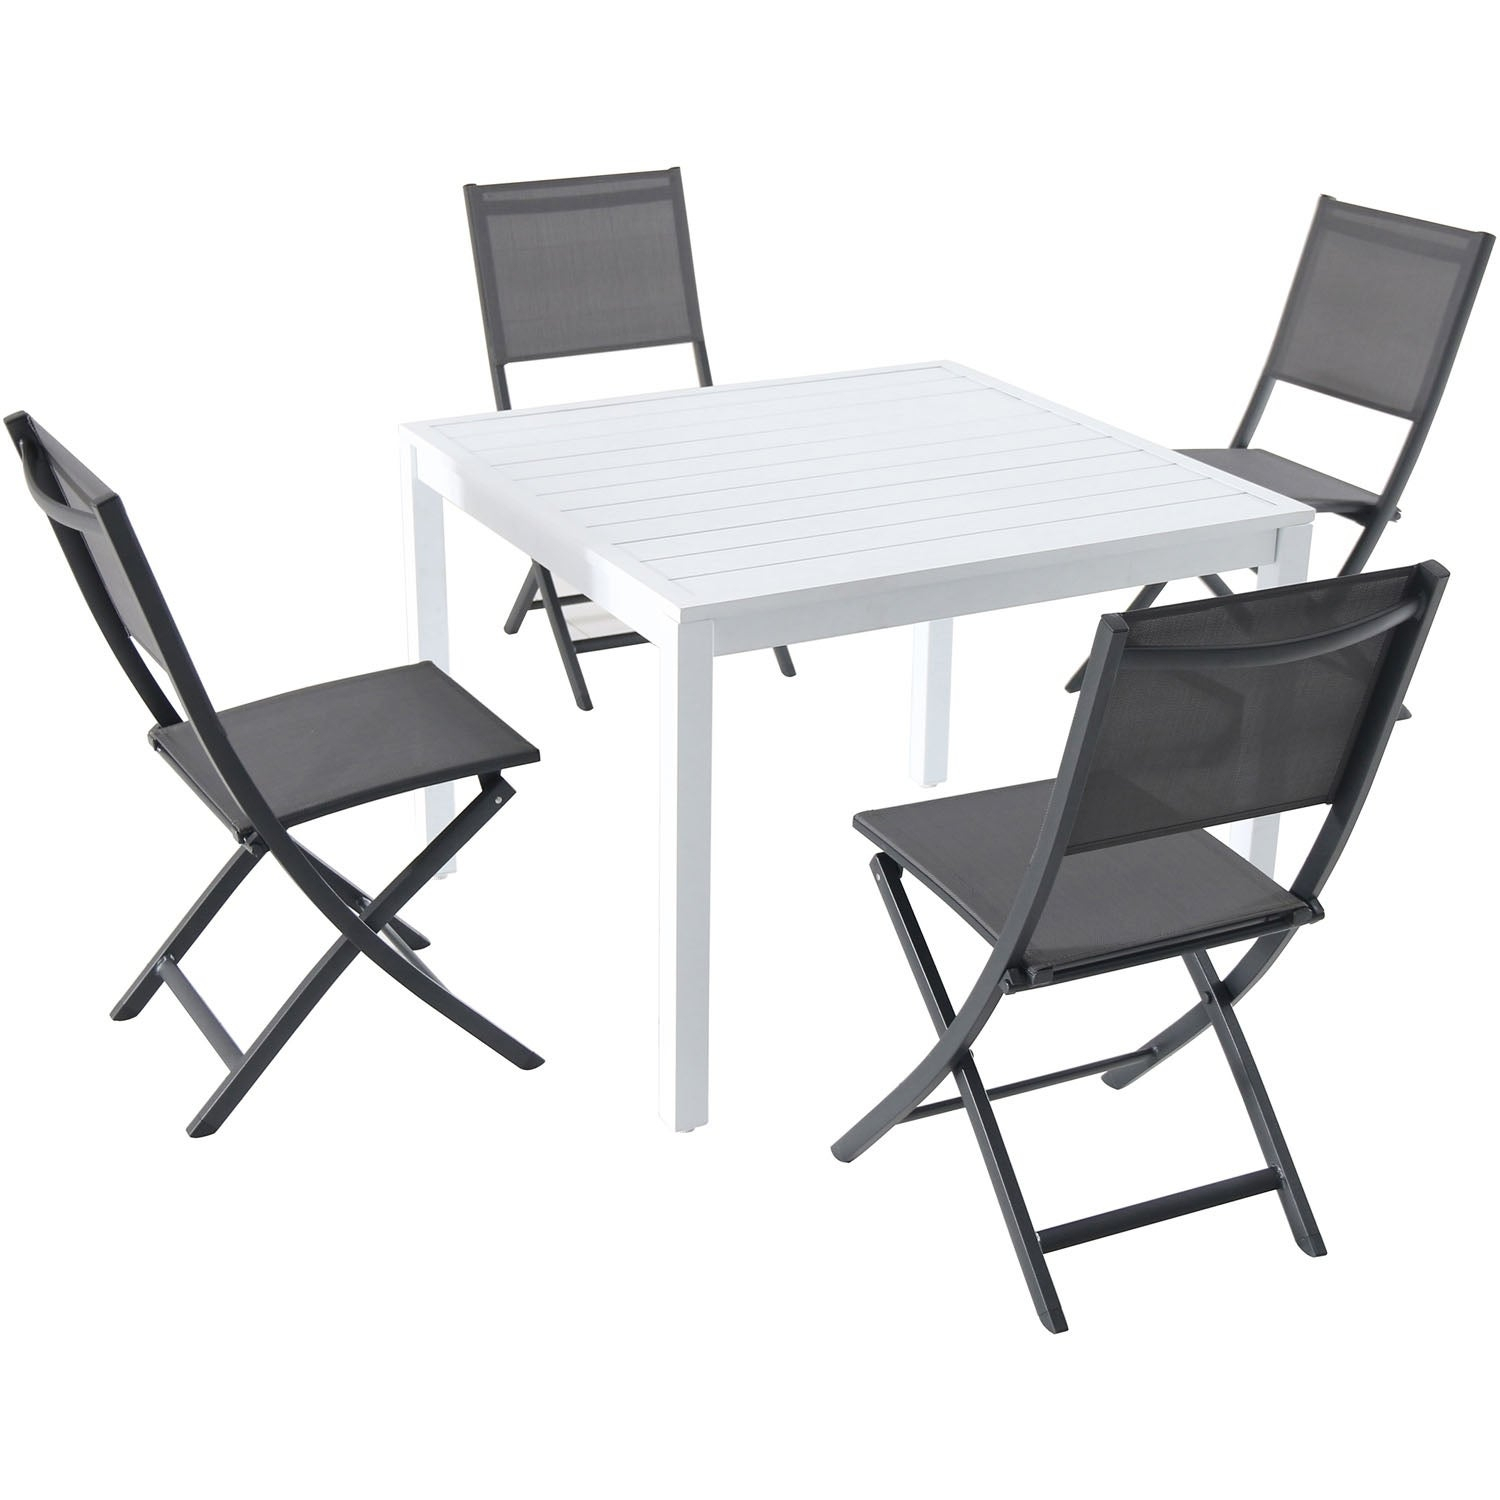 "Hanover Del Mar 5 Piece Outdoor Dining Set With 4 Sling Folding Chairs And A 38"" Square Dining Table Pertaining To Best And Newest Delmar 5 Piece Dining Sets (View 10 of 20)"